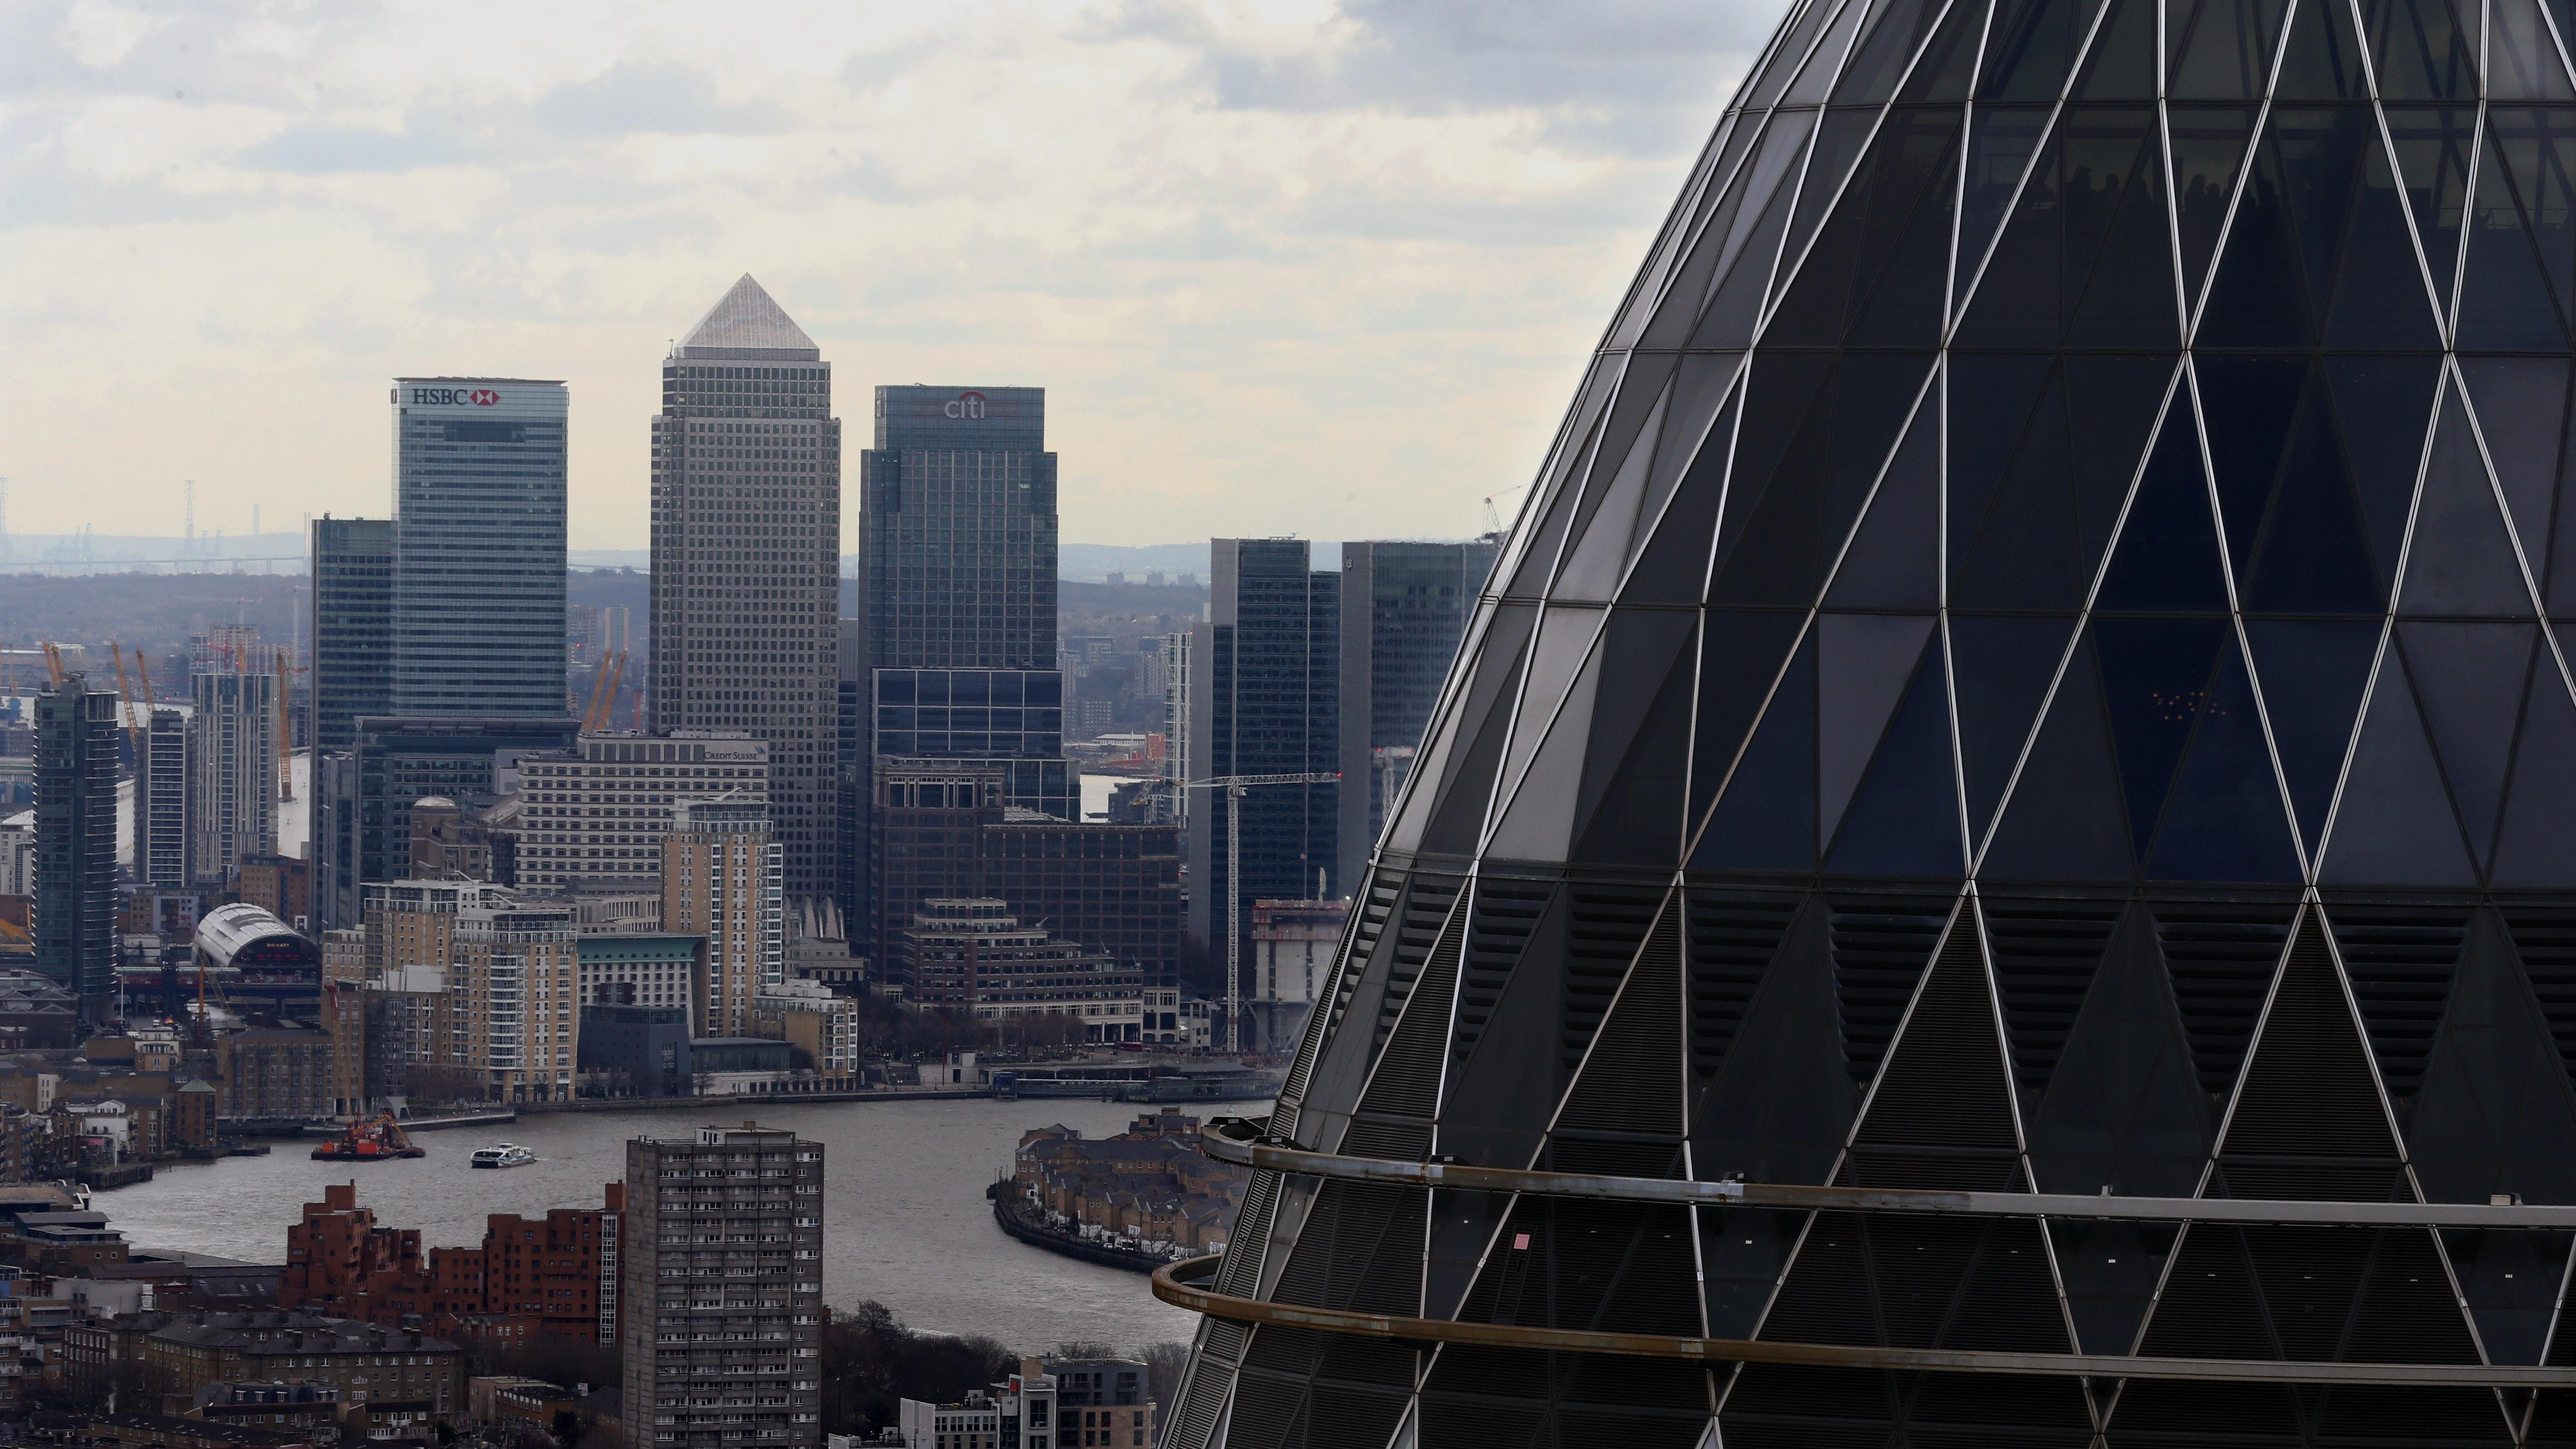 No-deal Brexit poses unknown risks of disruption, warns financial watchdog